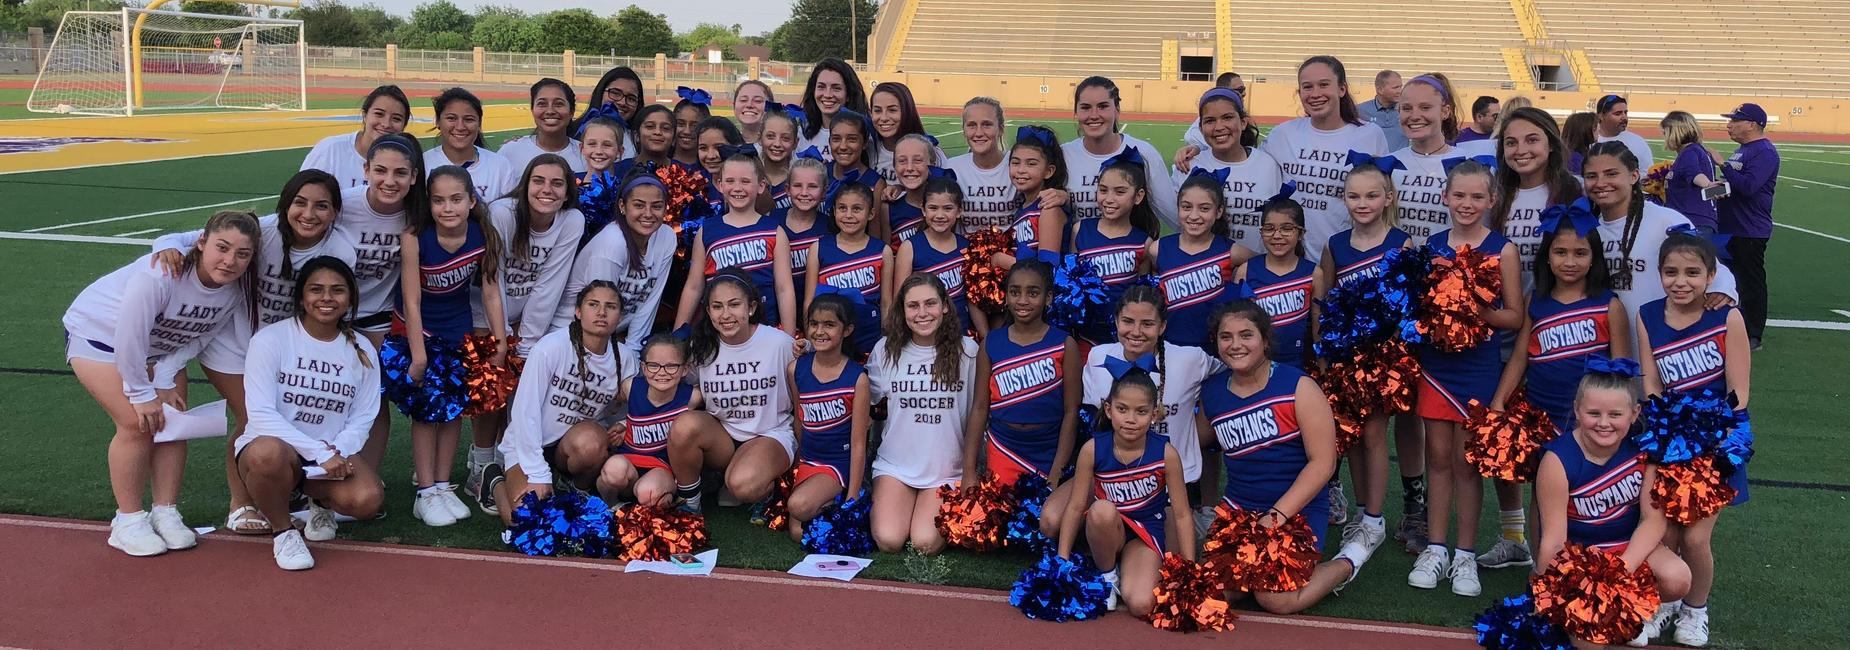 Lady Bulldog Soccer Team and Milam Cheer